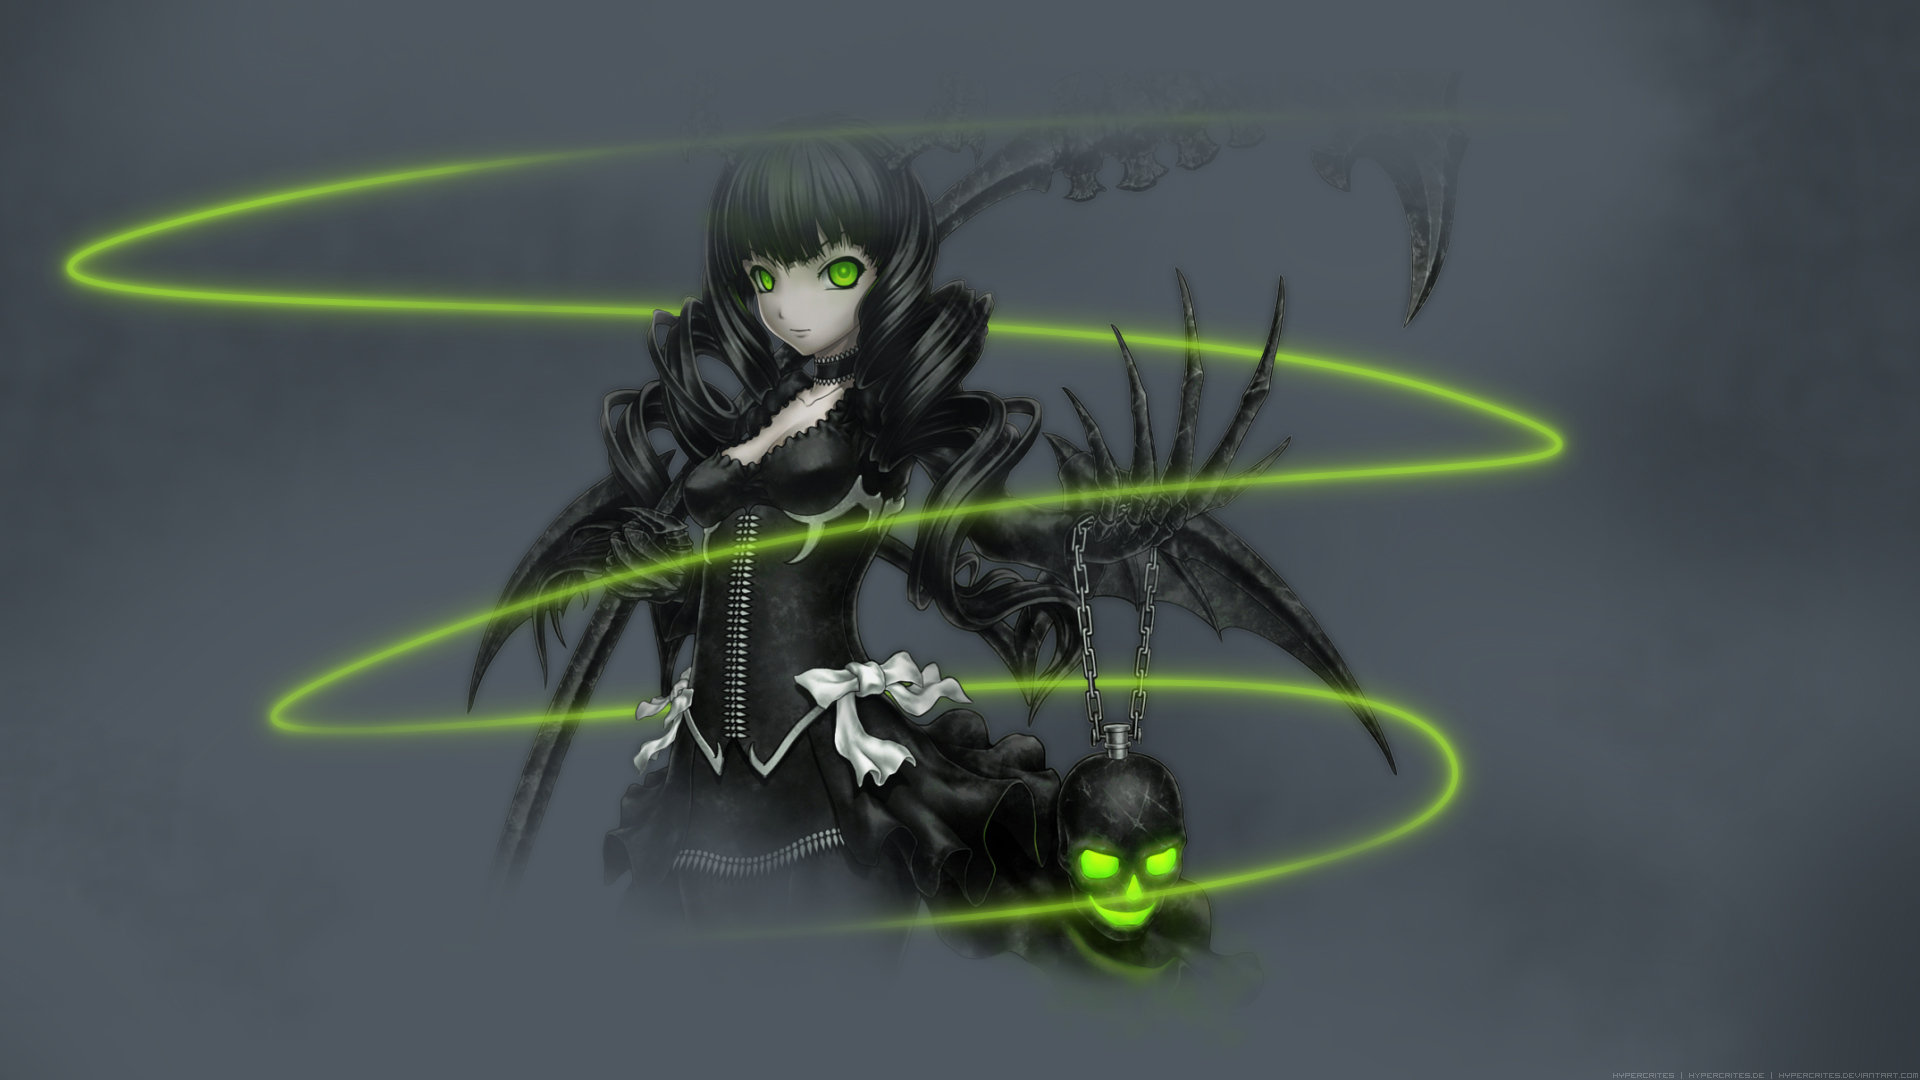 Download full hd Dead Master (Black Rock Shooter) computer background ID:454769 for free